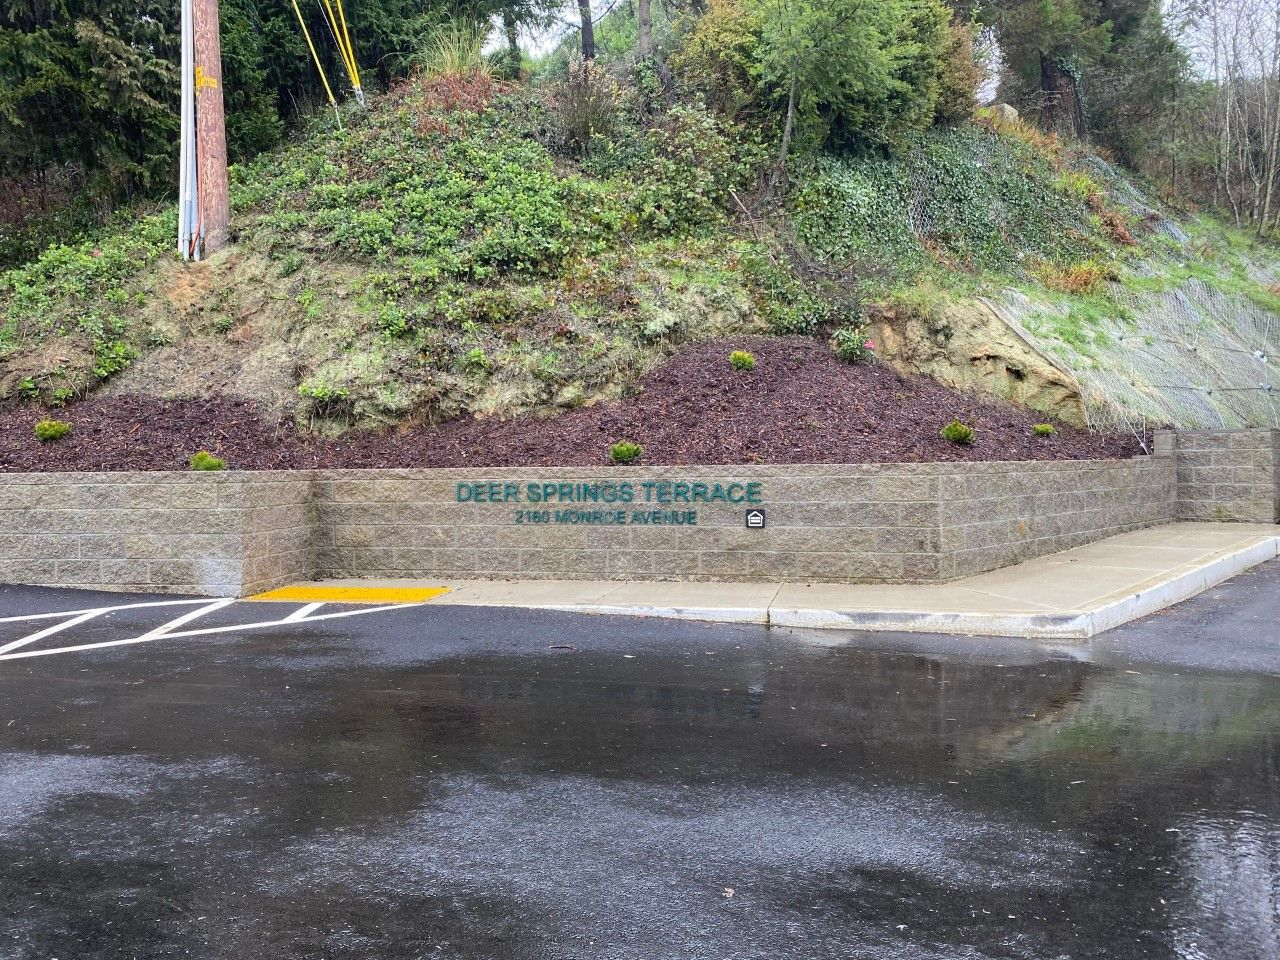 <p>Oregon Coast Community Action has built Deer Springs Terrace to help at-risk homeless veterans get back on their feet, Jan. 23, 2020. (SBG)</p>